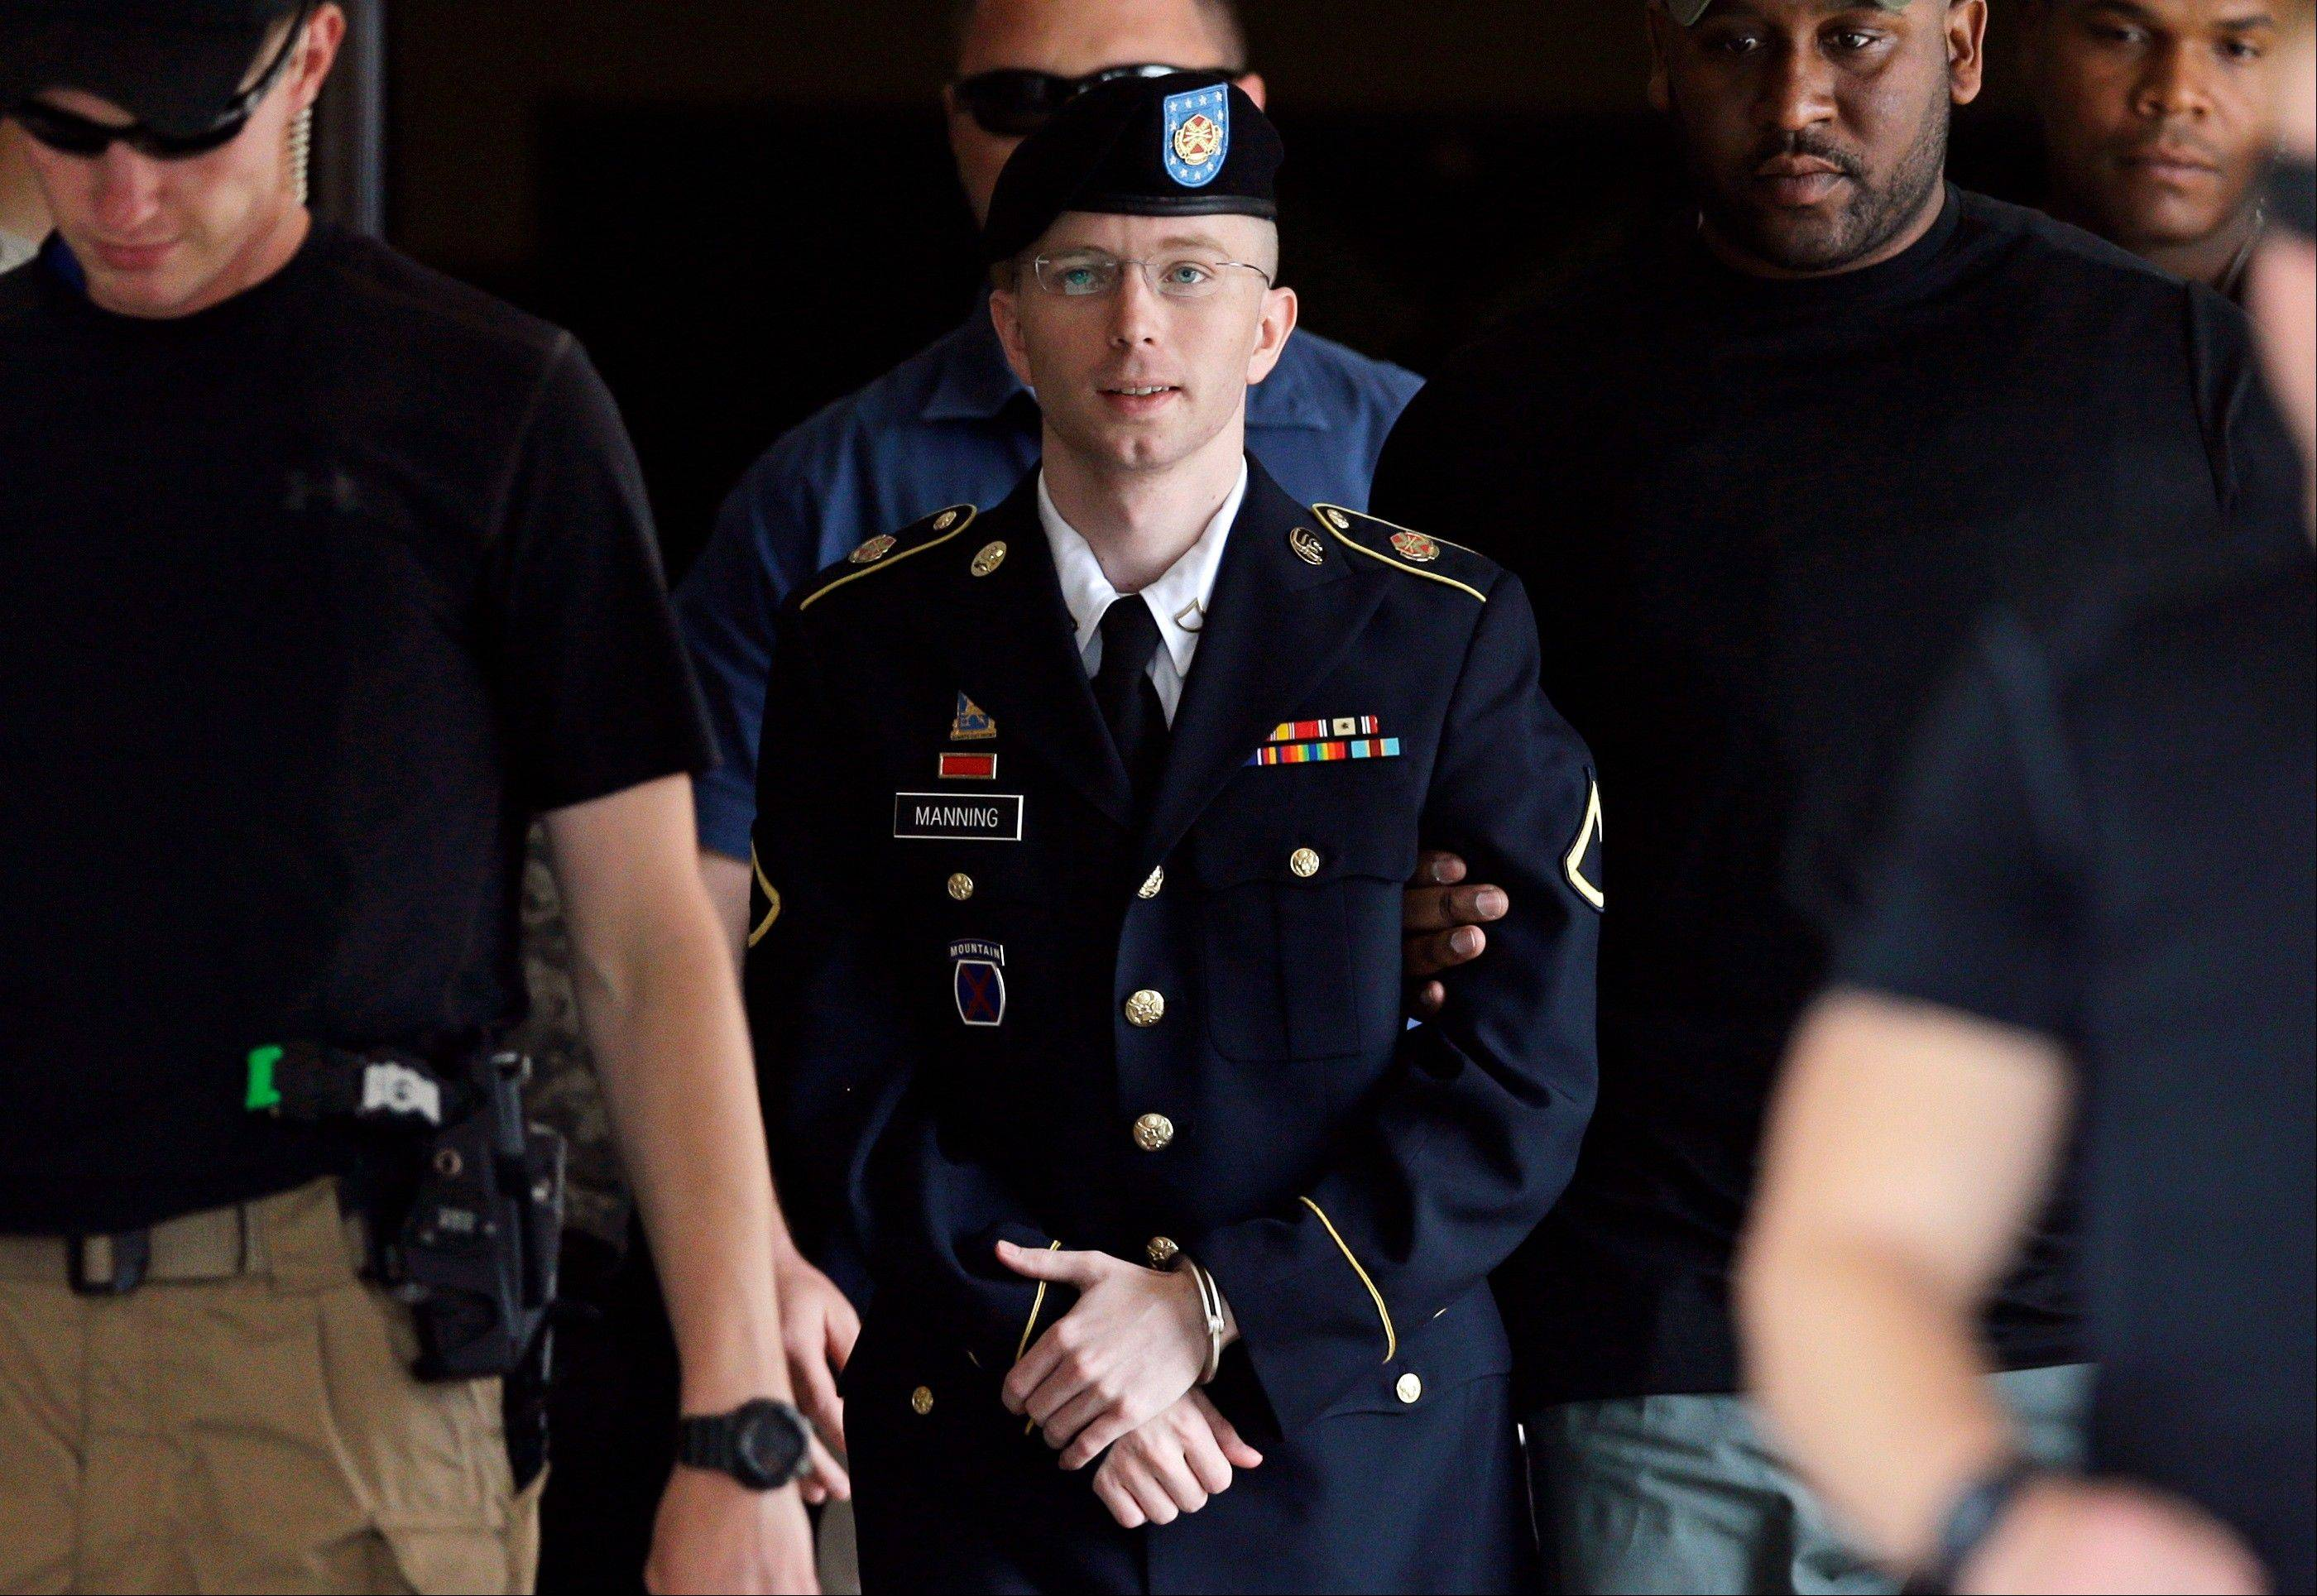 Bradley Manning's mother: My son is 'Superman'